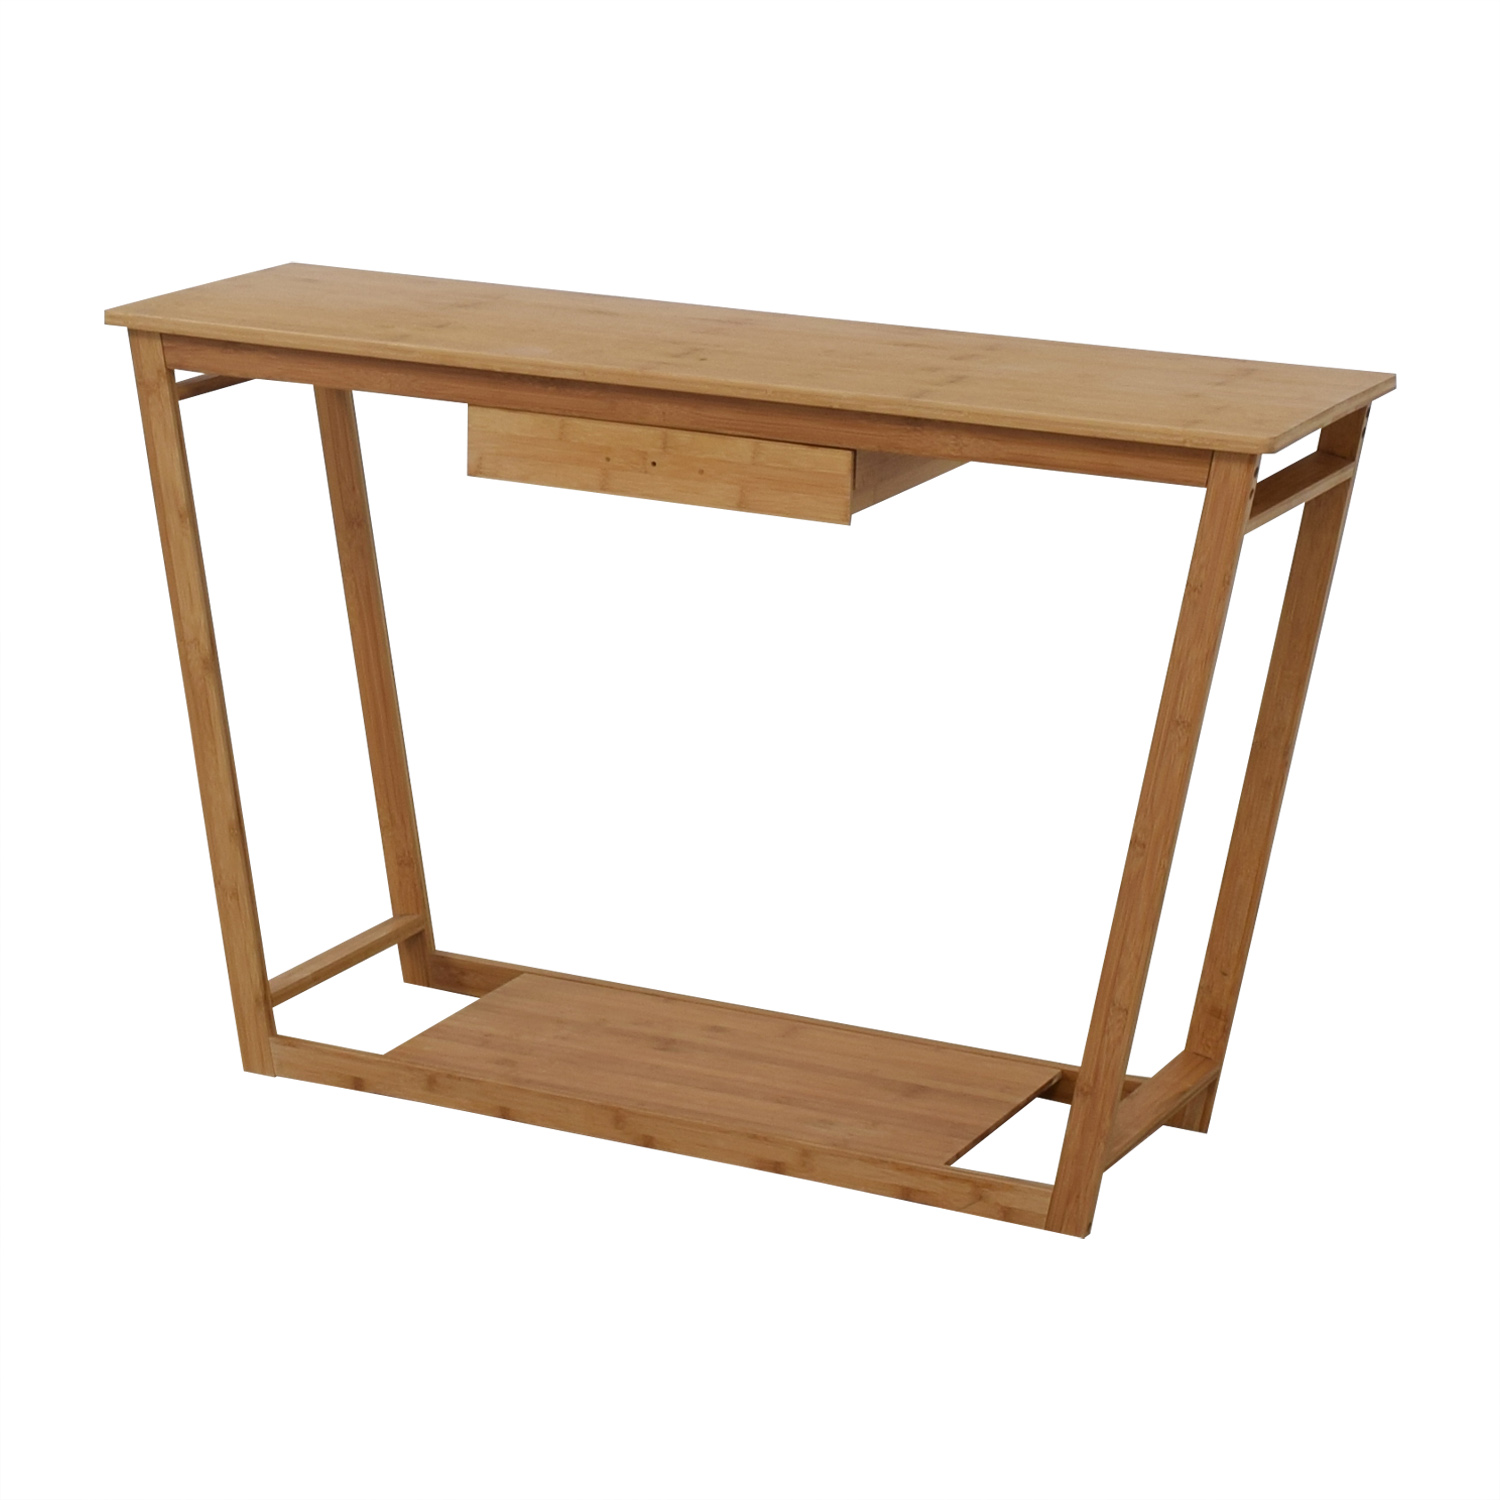 Bamboo Wood Single Drawer Desk or Table discount